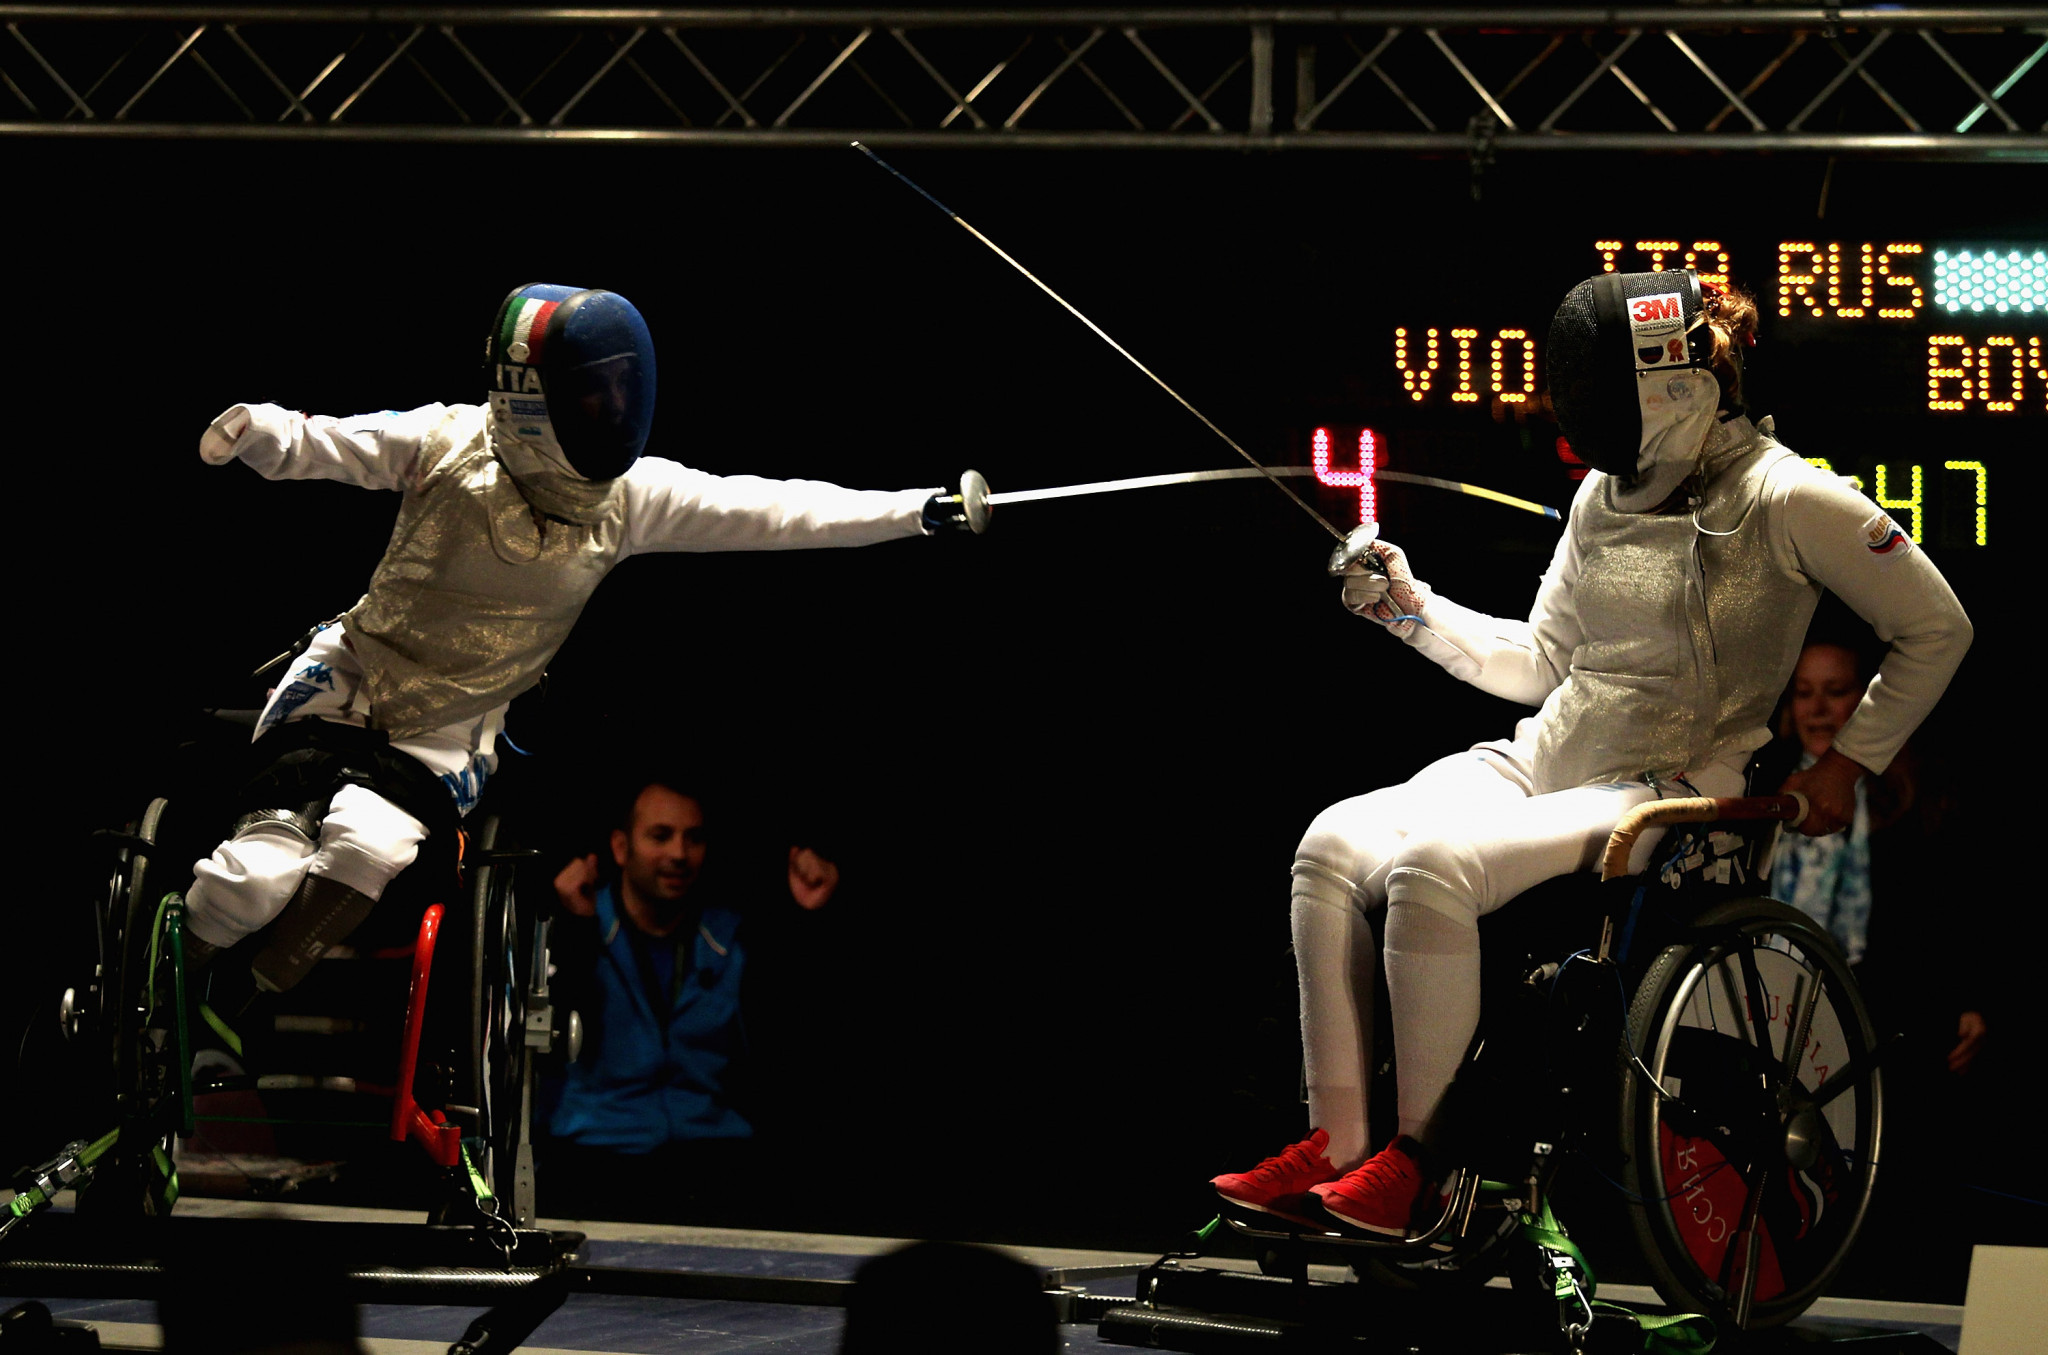 Wheelchair Fencing World Cup in Pisa cancelled over COVID-19 concerns